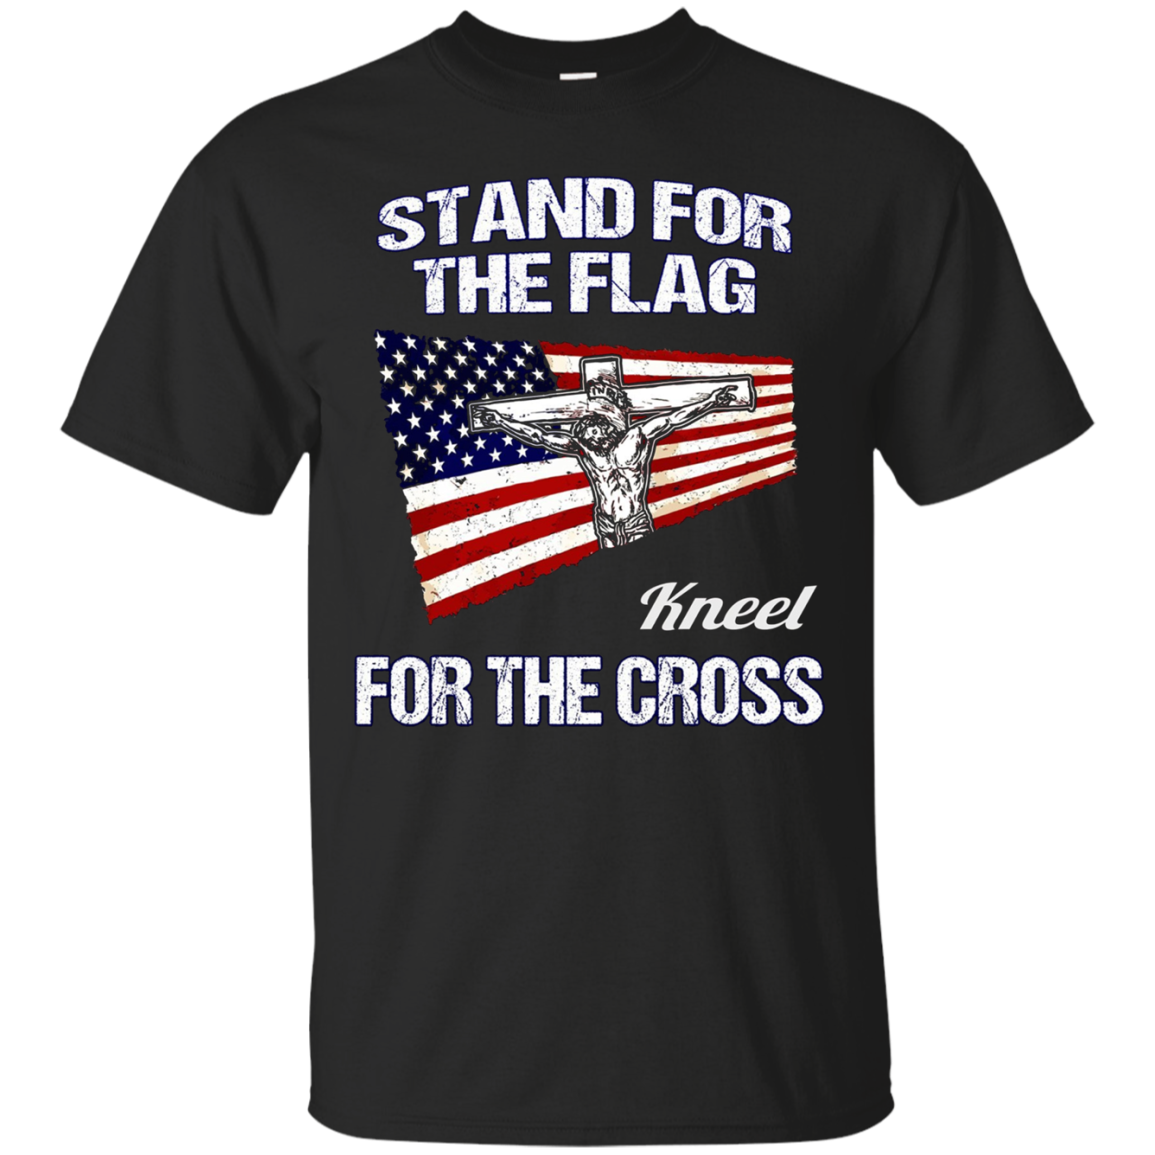 America Stand for the Flag USA Patriotic Christian Tee Shirt